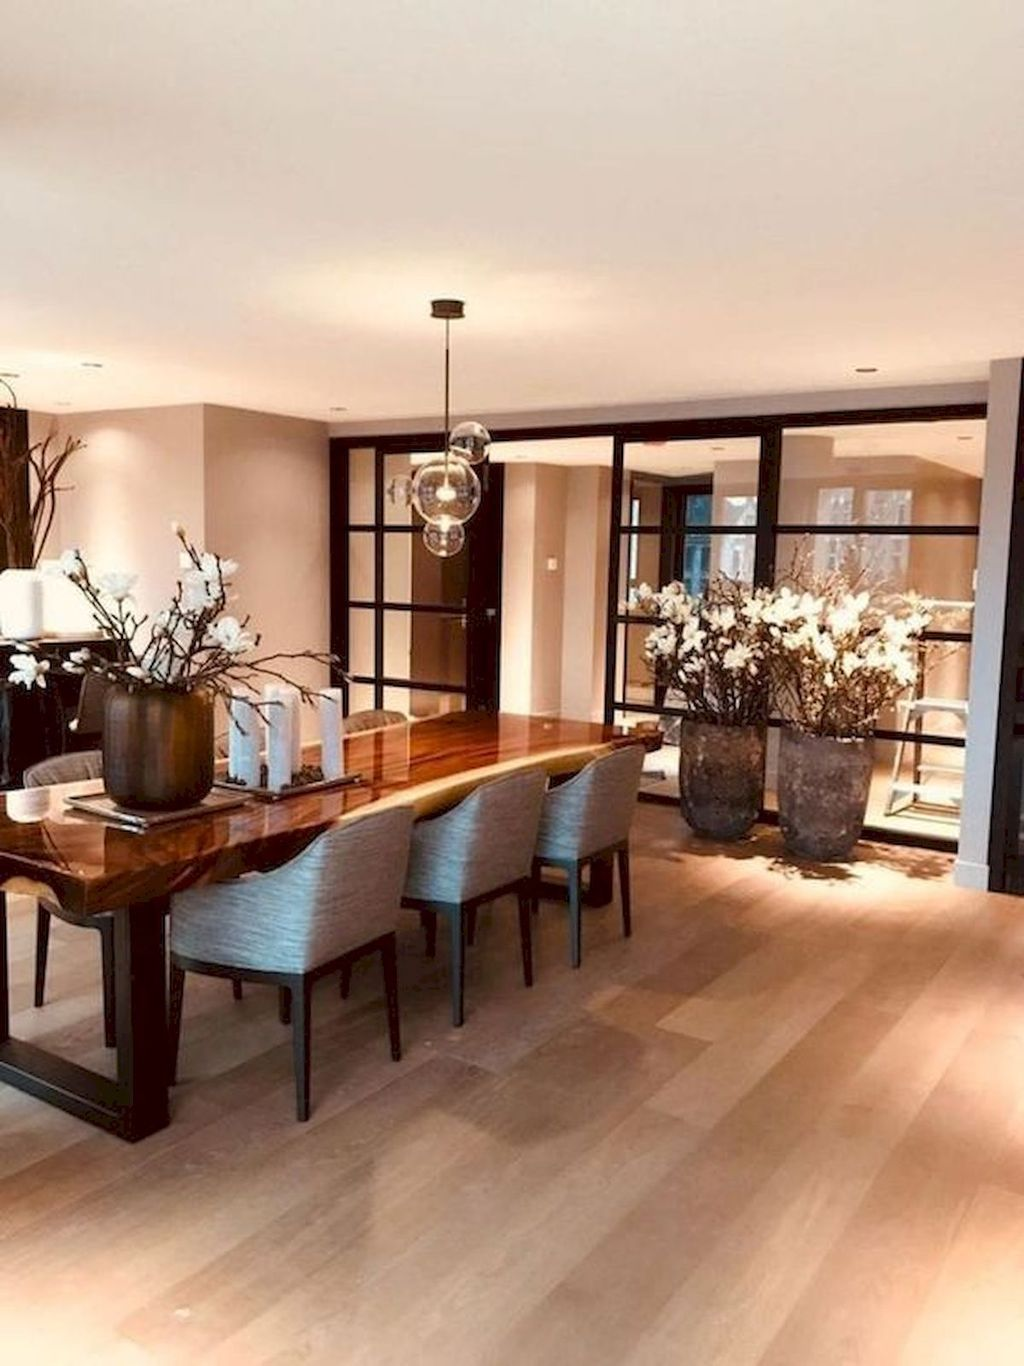 Admirable Dining Room Design Ideas 12